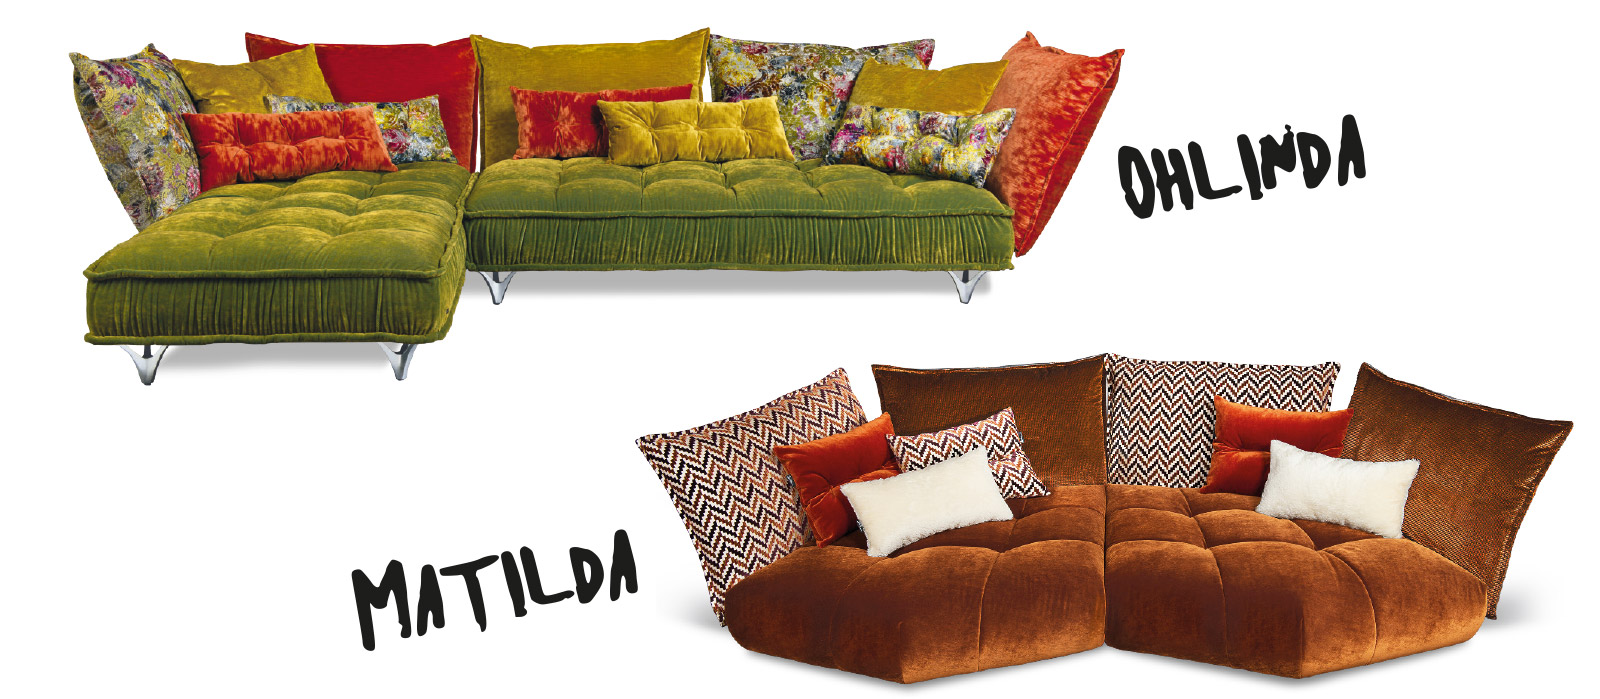 Mailand Flair Sofas